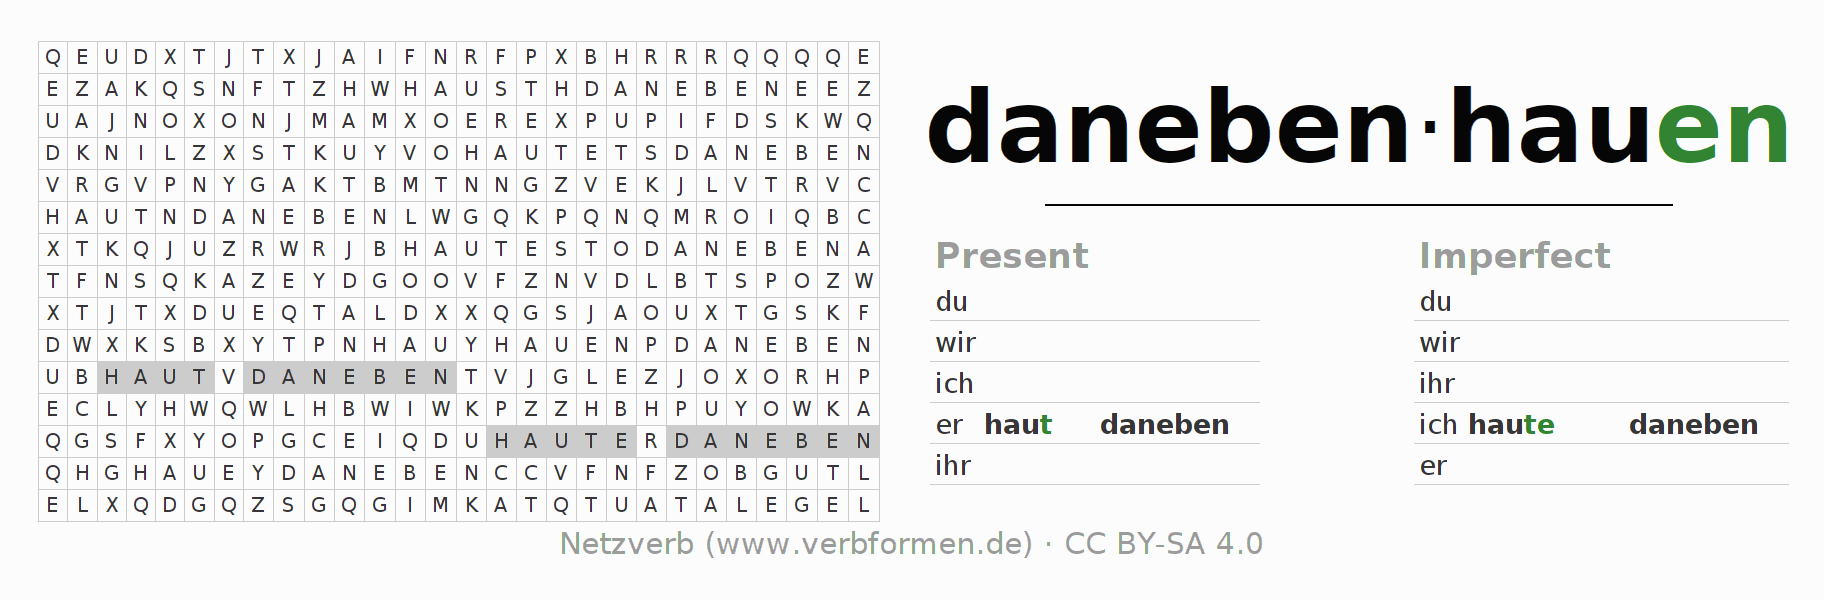 Word search puzzle for the conjugation of the verb danebenhauen (regelm)